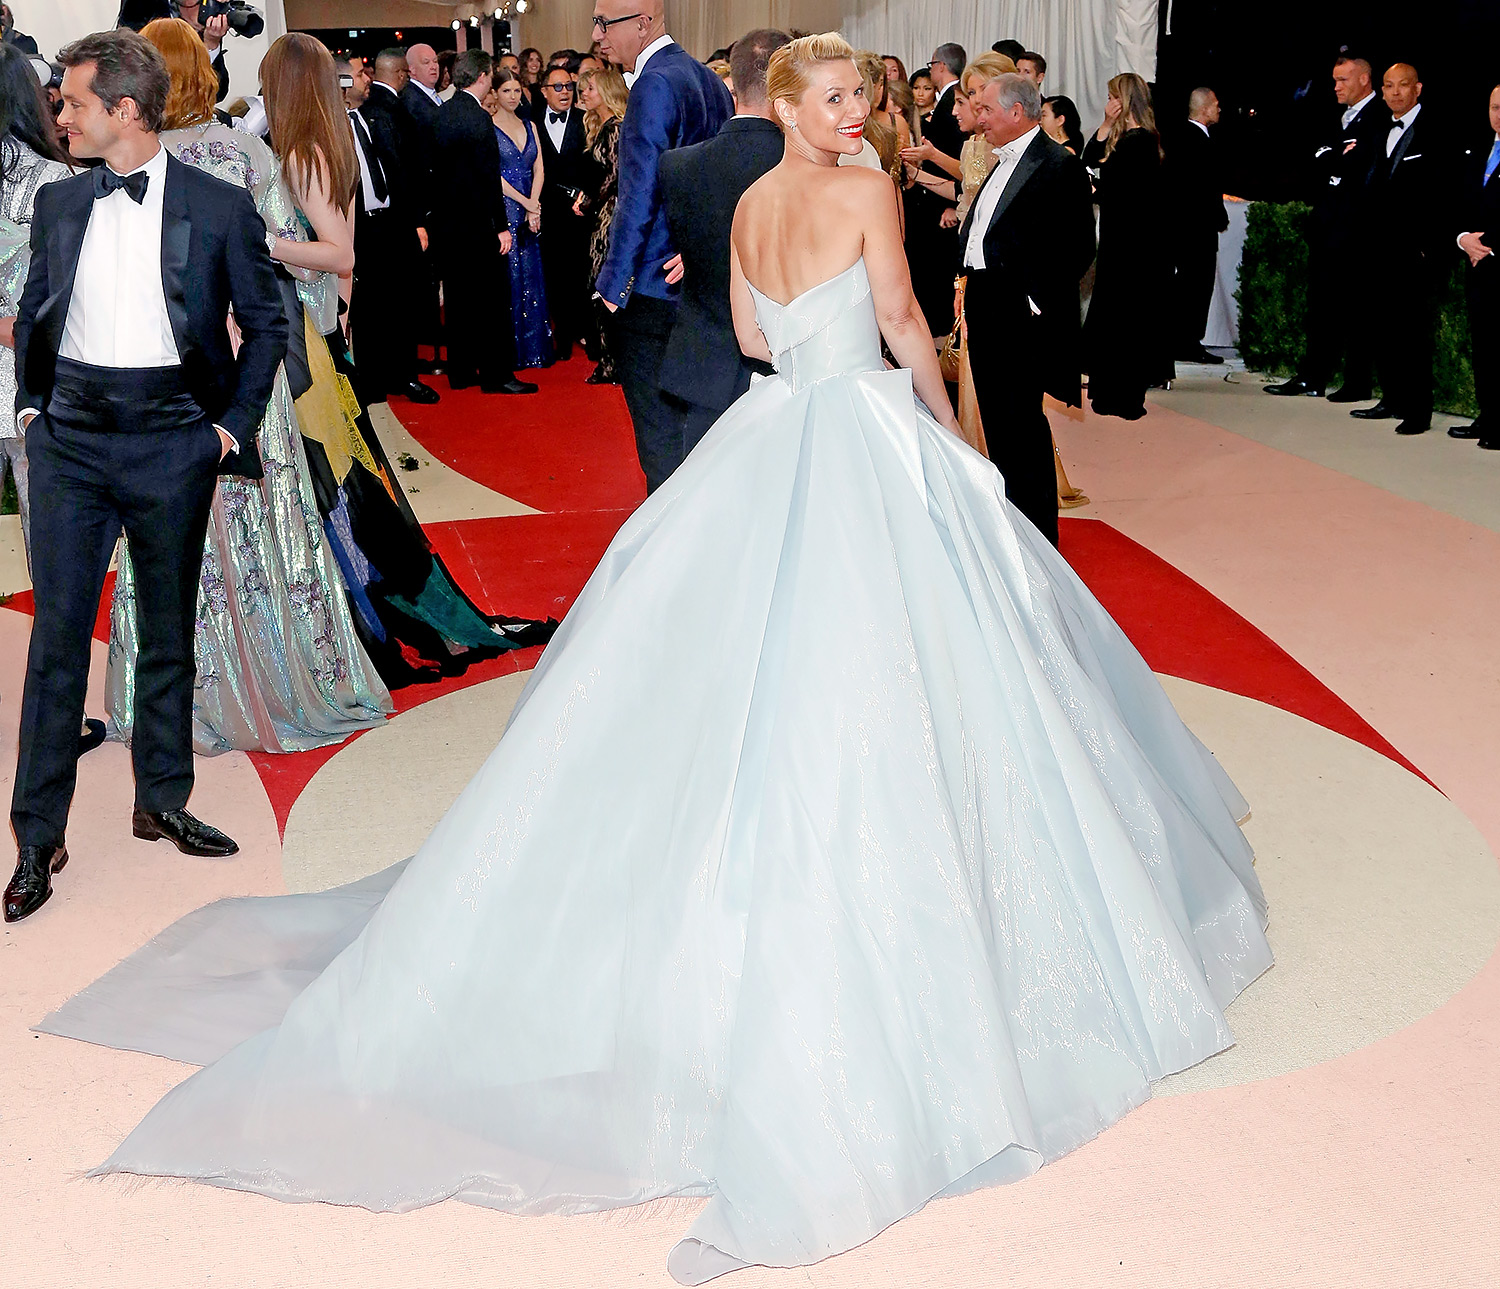 Claire Danes Channels Cinderella In Light-Up Met Gala Dress